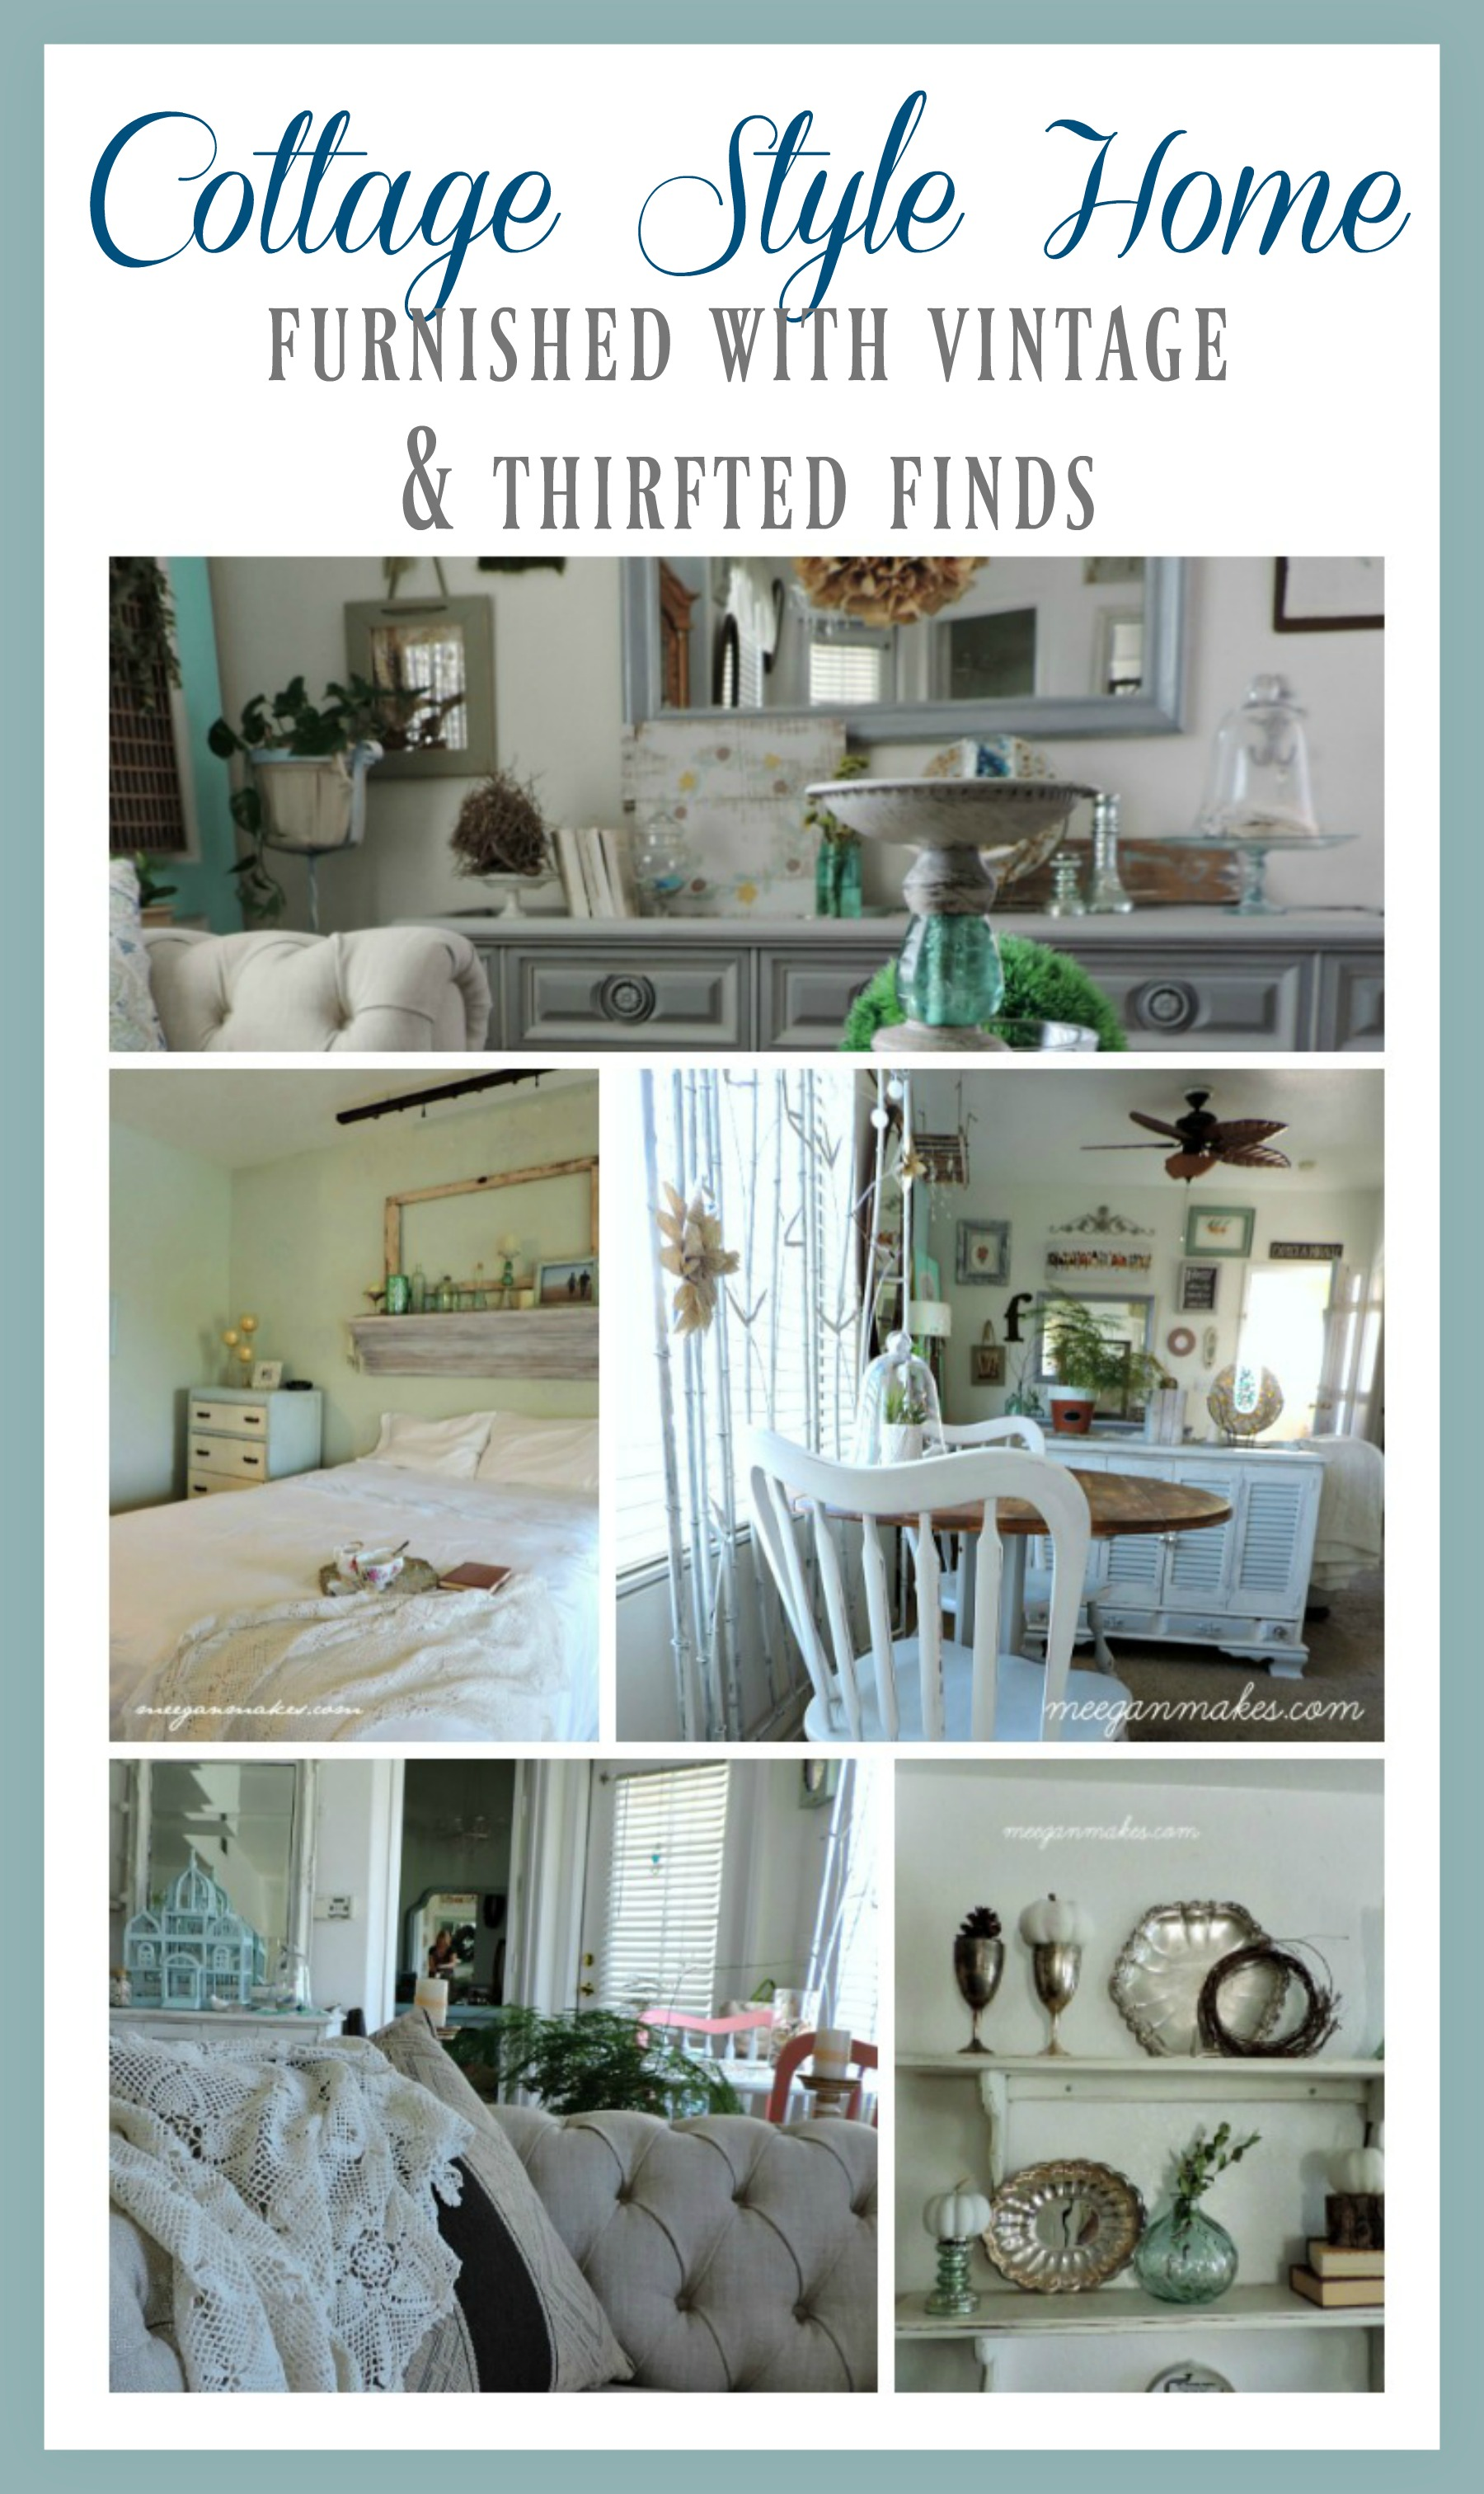 Cottage Style Home: Cottage Style Home